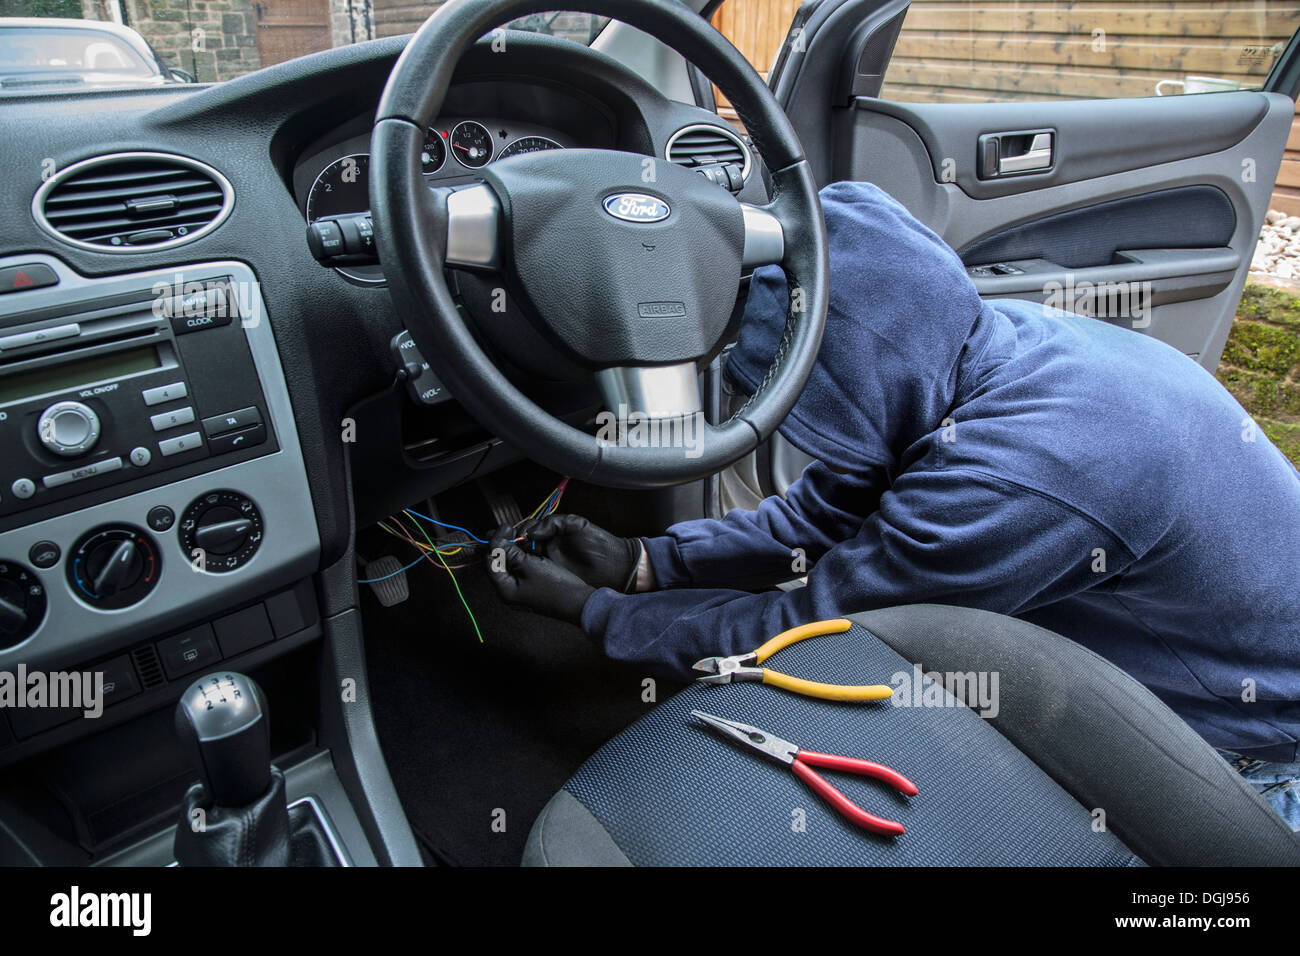 Magnificent A Man Wearing A Hoody Hot Wiring A Car Stock Photo 61867938 Alamy Wiring Database Wedabyuccorg